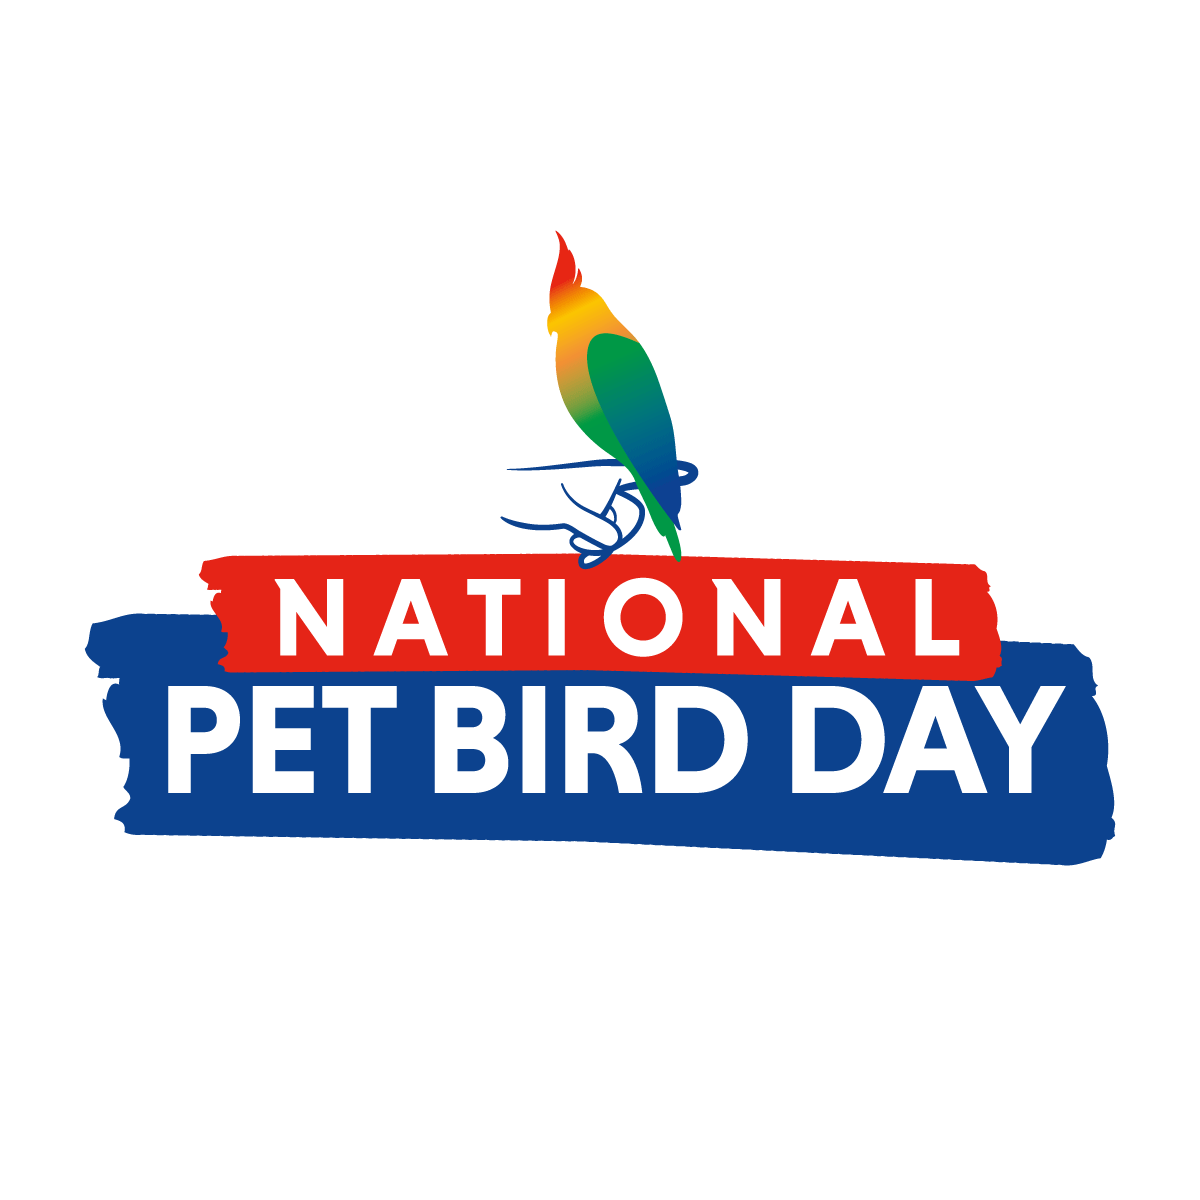 National Pet Bird Day logo (color)